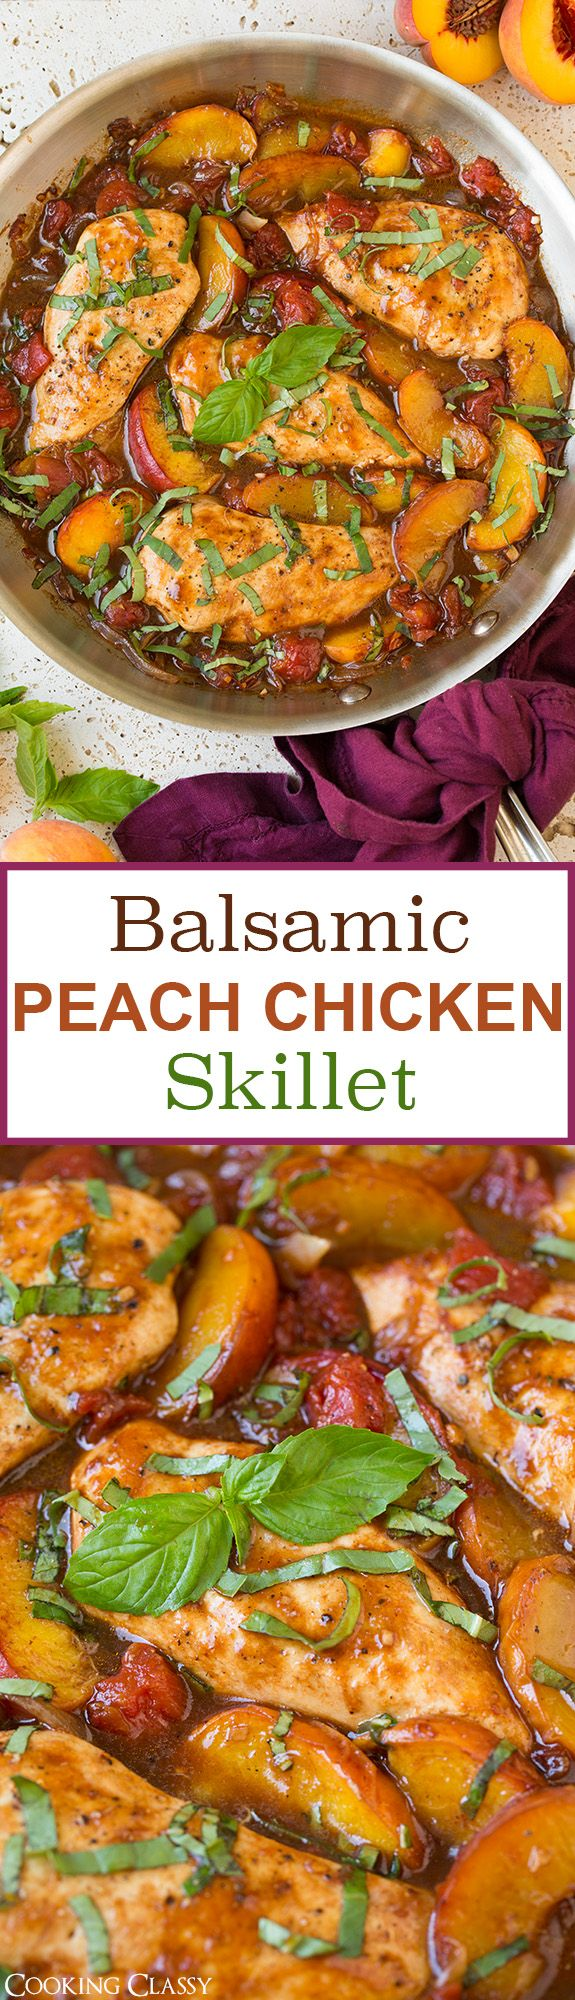 Balsamic Peach Chicken Skillet - this is SO FLAVORFUL! I absolutely loved it! The combination of fresh peaches, basil and balsamic vinegar gives chicken such a  delicious upgrade.